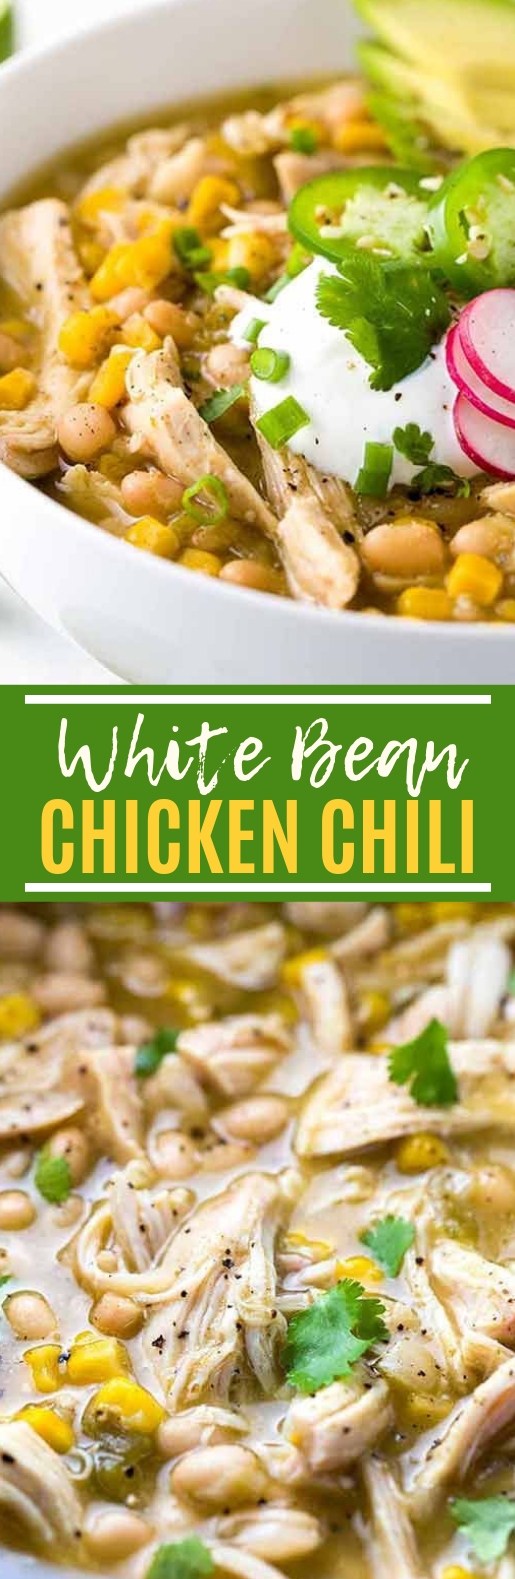 White Bean Chicken Chili #healthy #soup